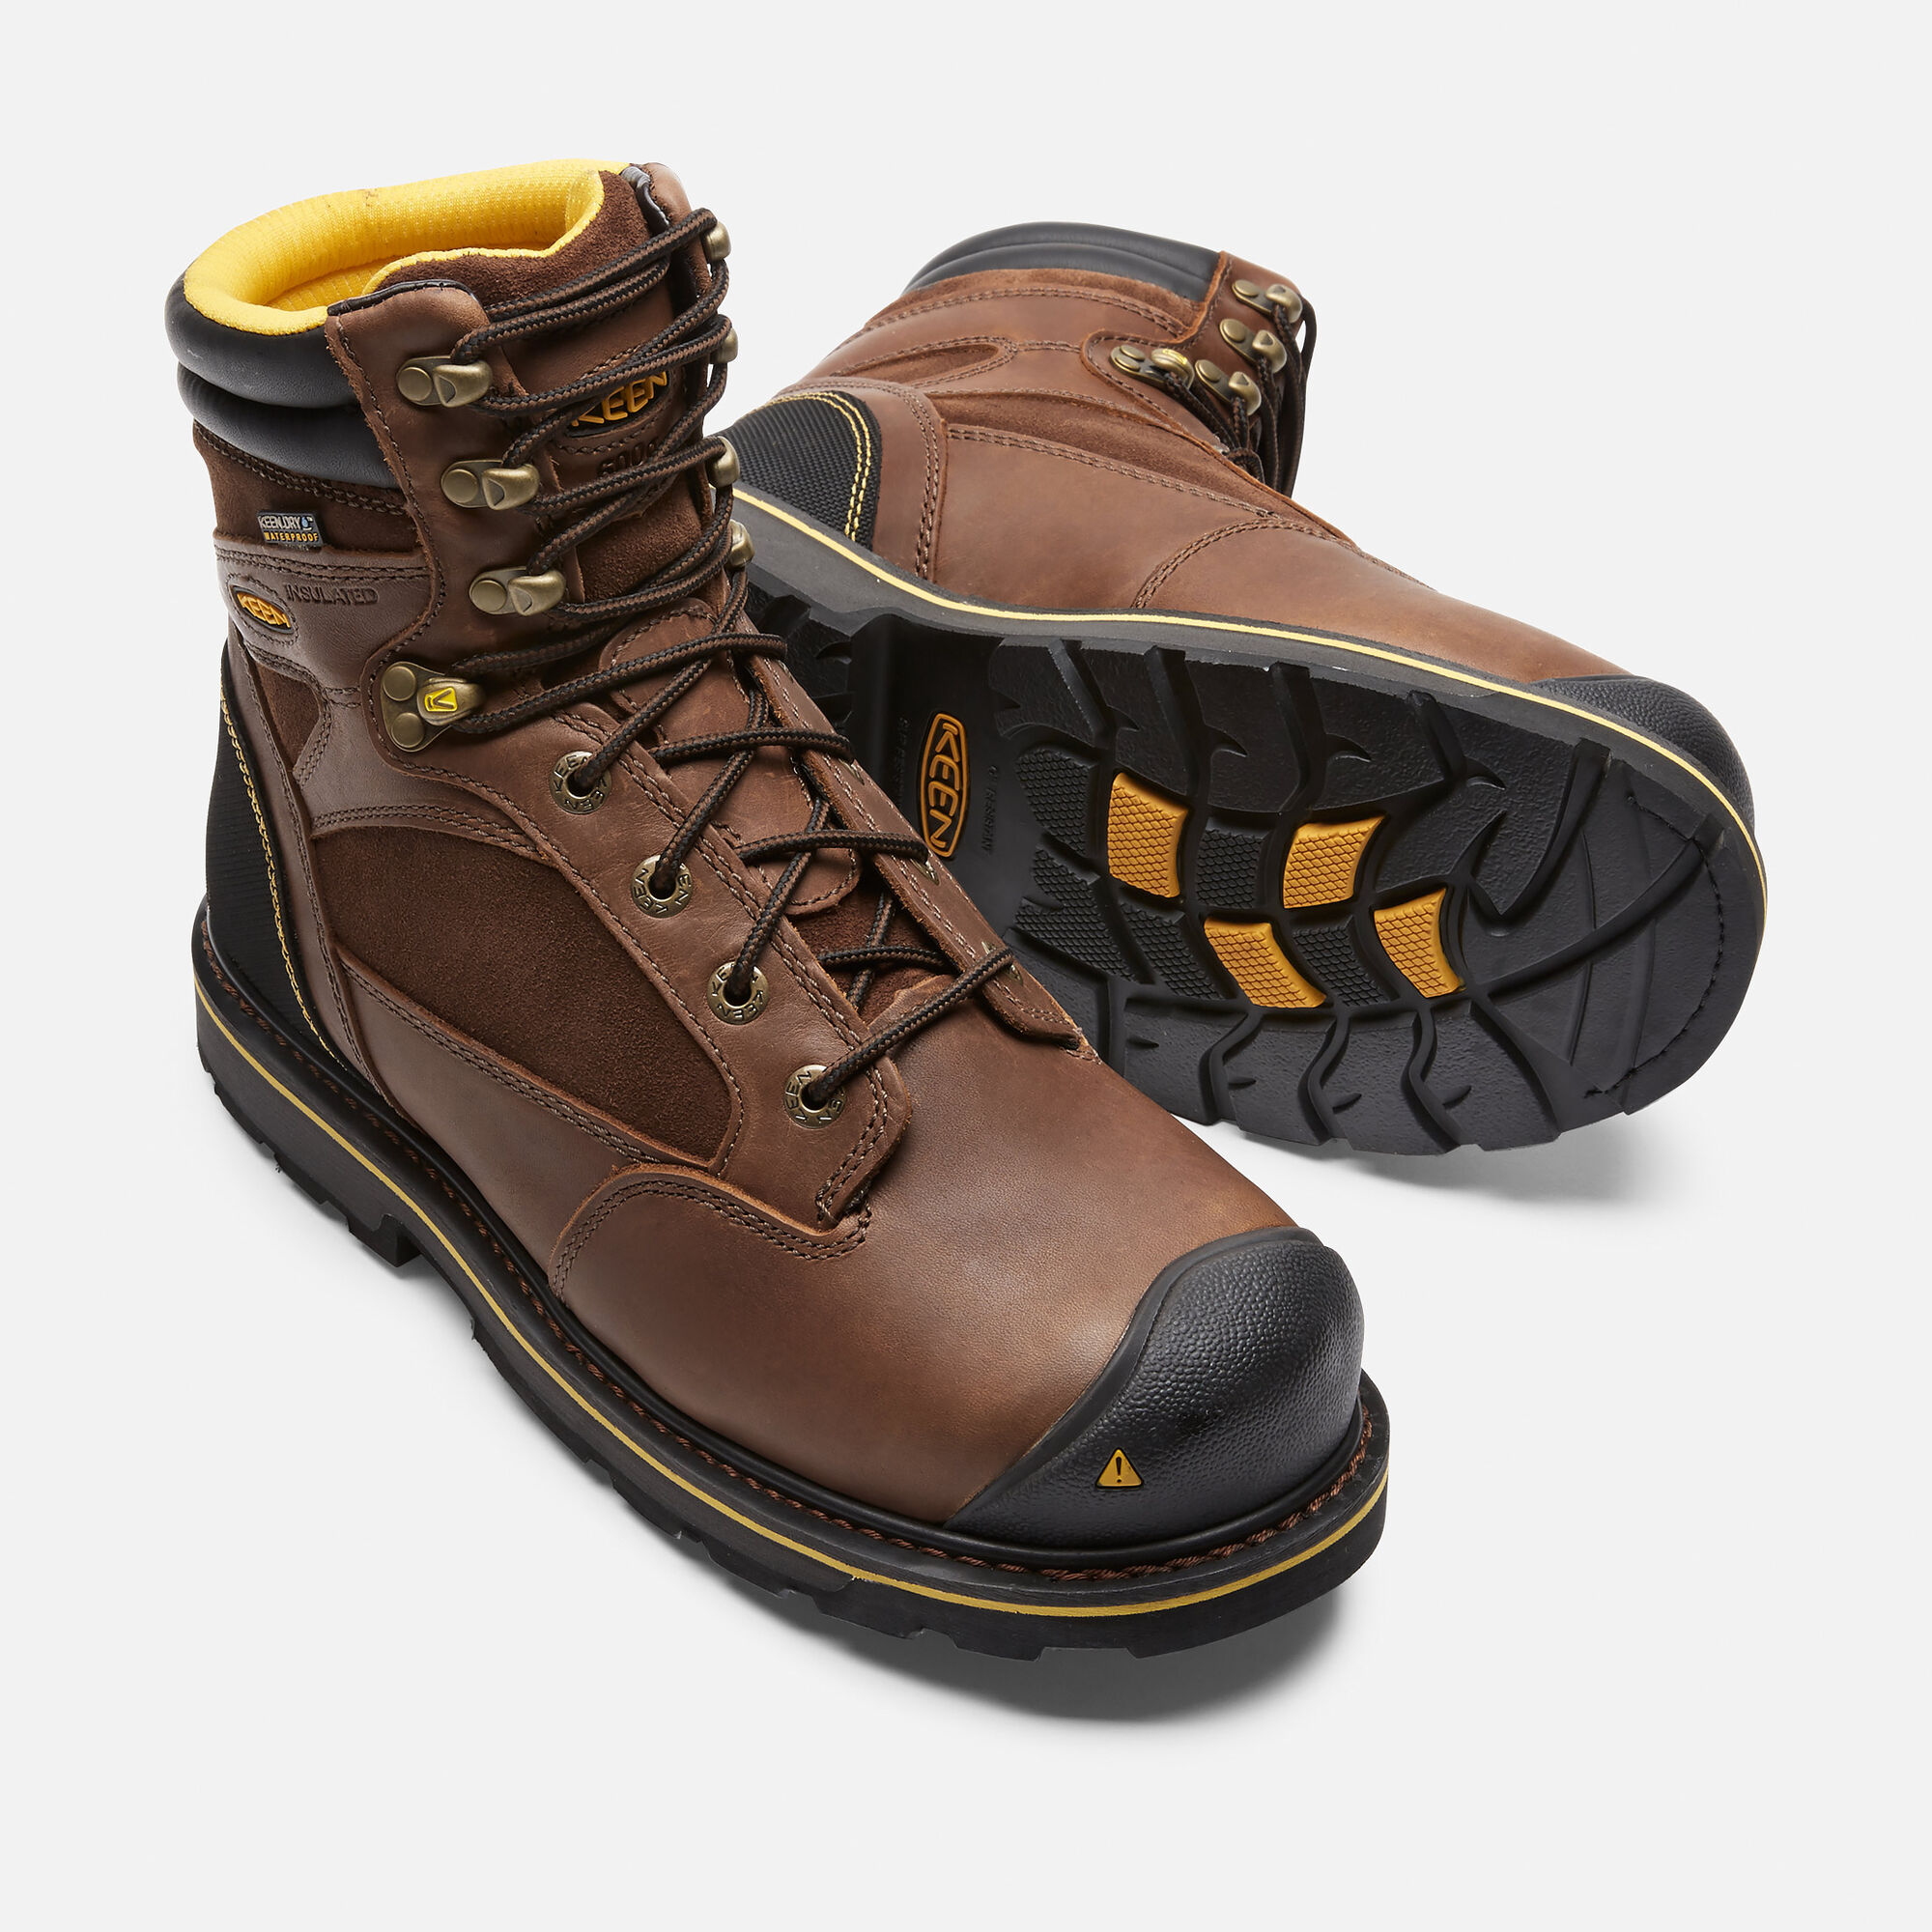 Insulated Safety Shoes Uk